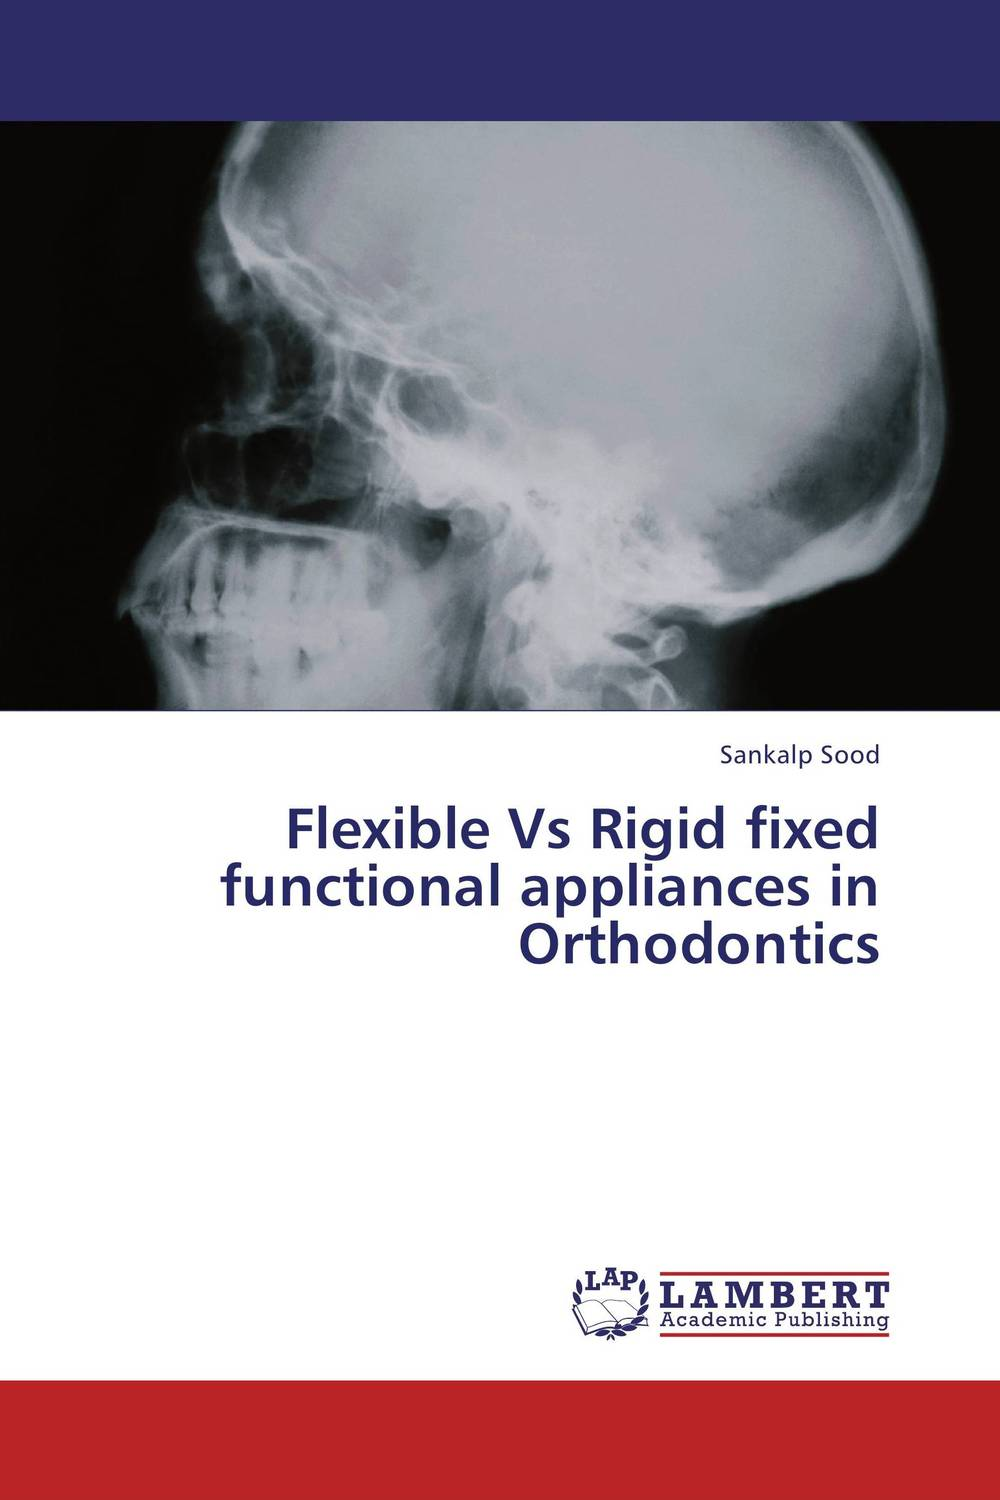 Flexible Vs Rigid fixed functional appliances in Orthodontics in vitro mechanism for the repair of muscle differentiation in dm1